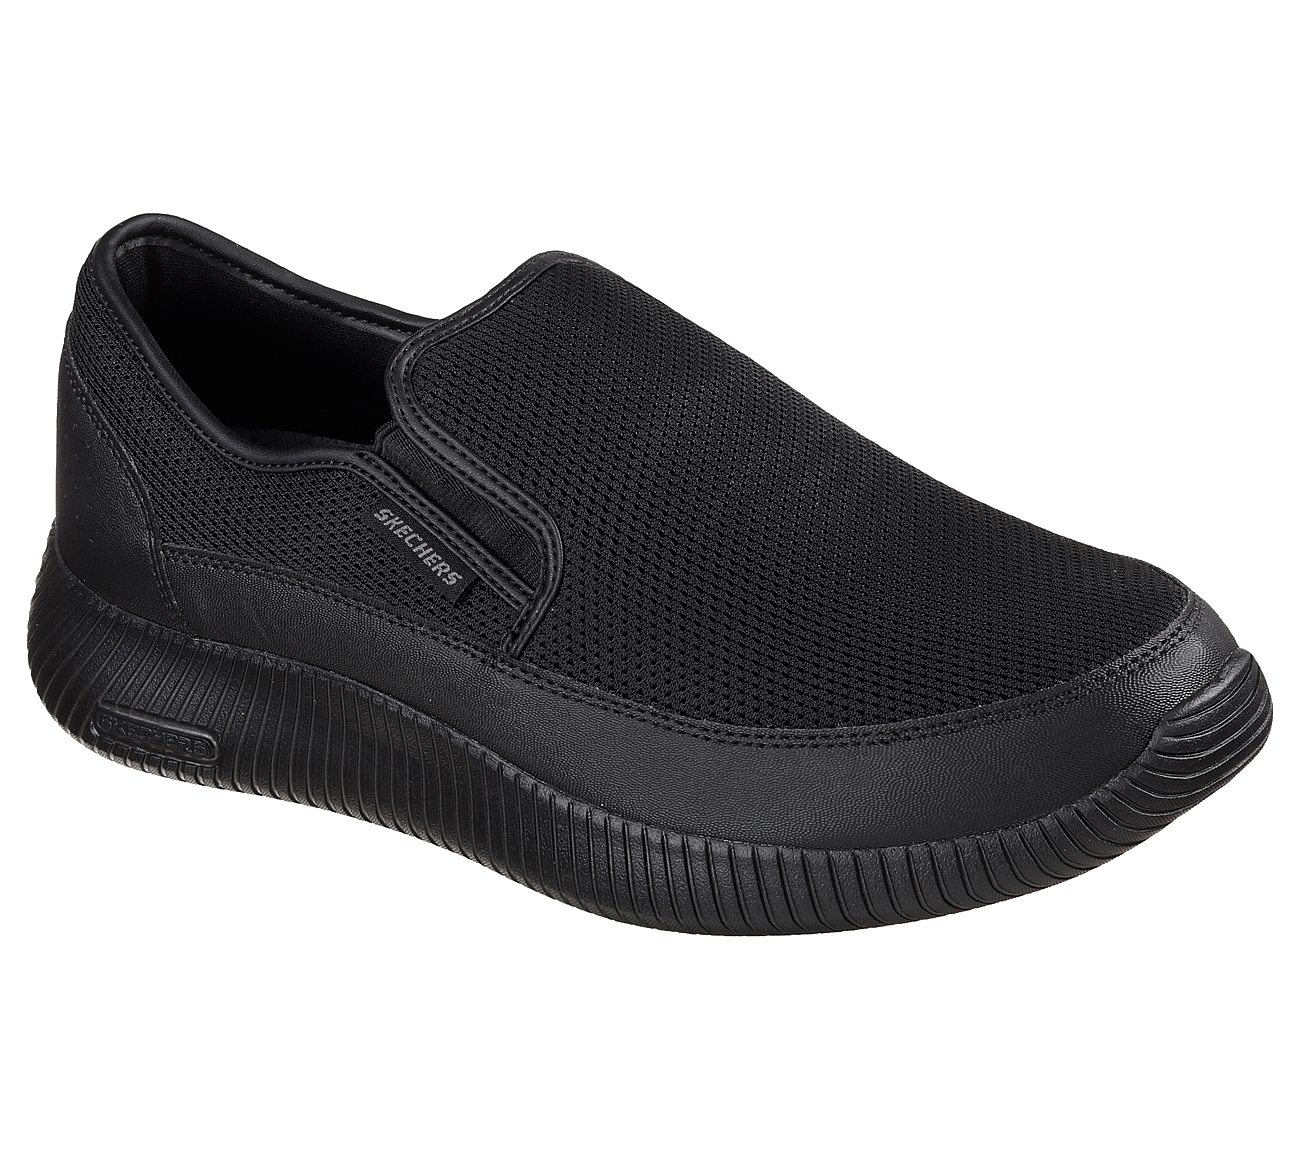 SKECHERS Depth Charge Flish tNyfZvlKn